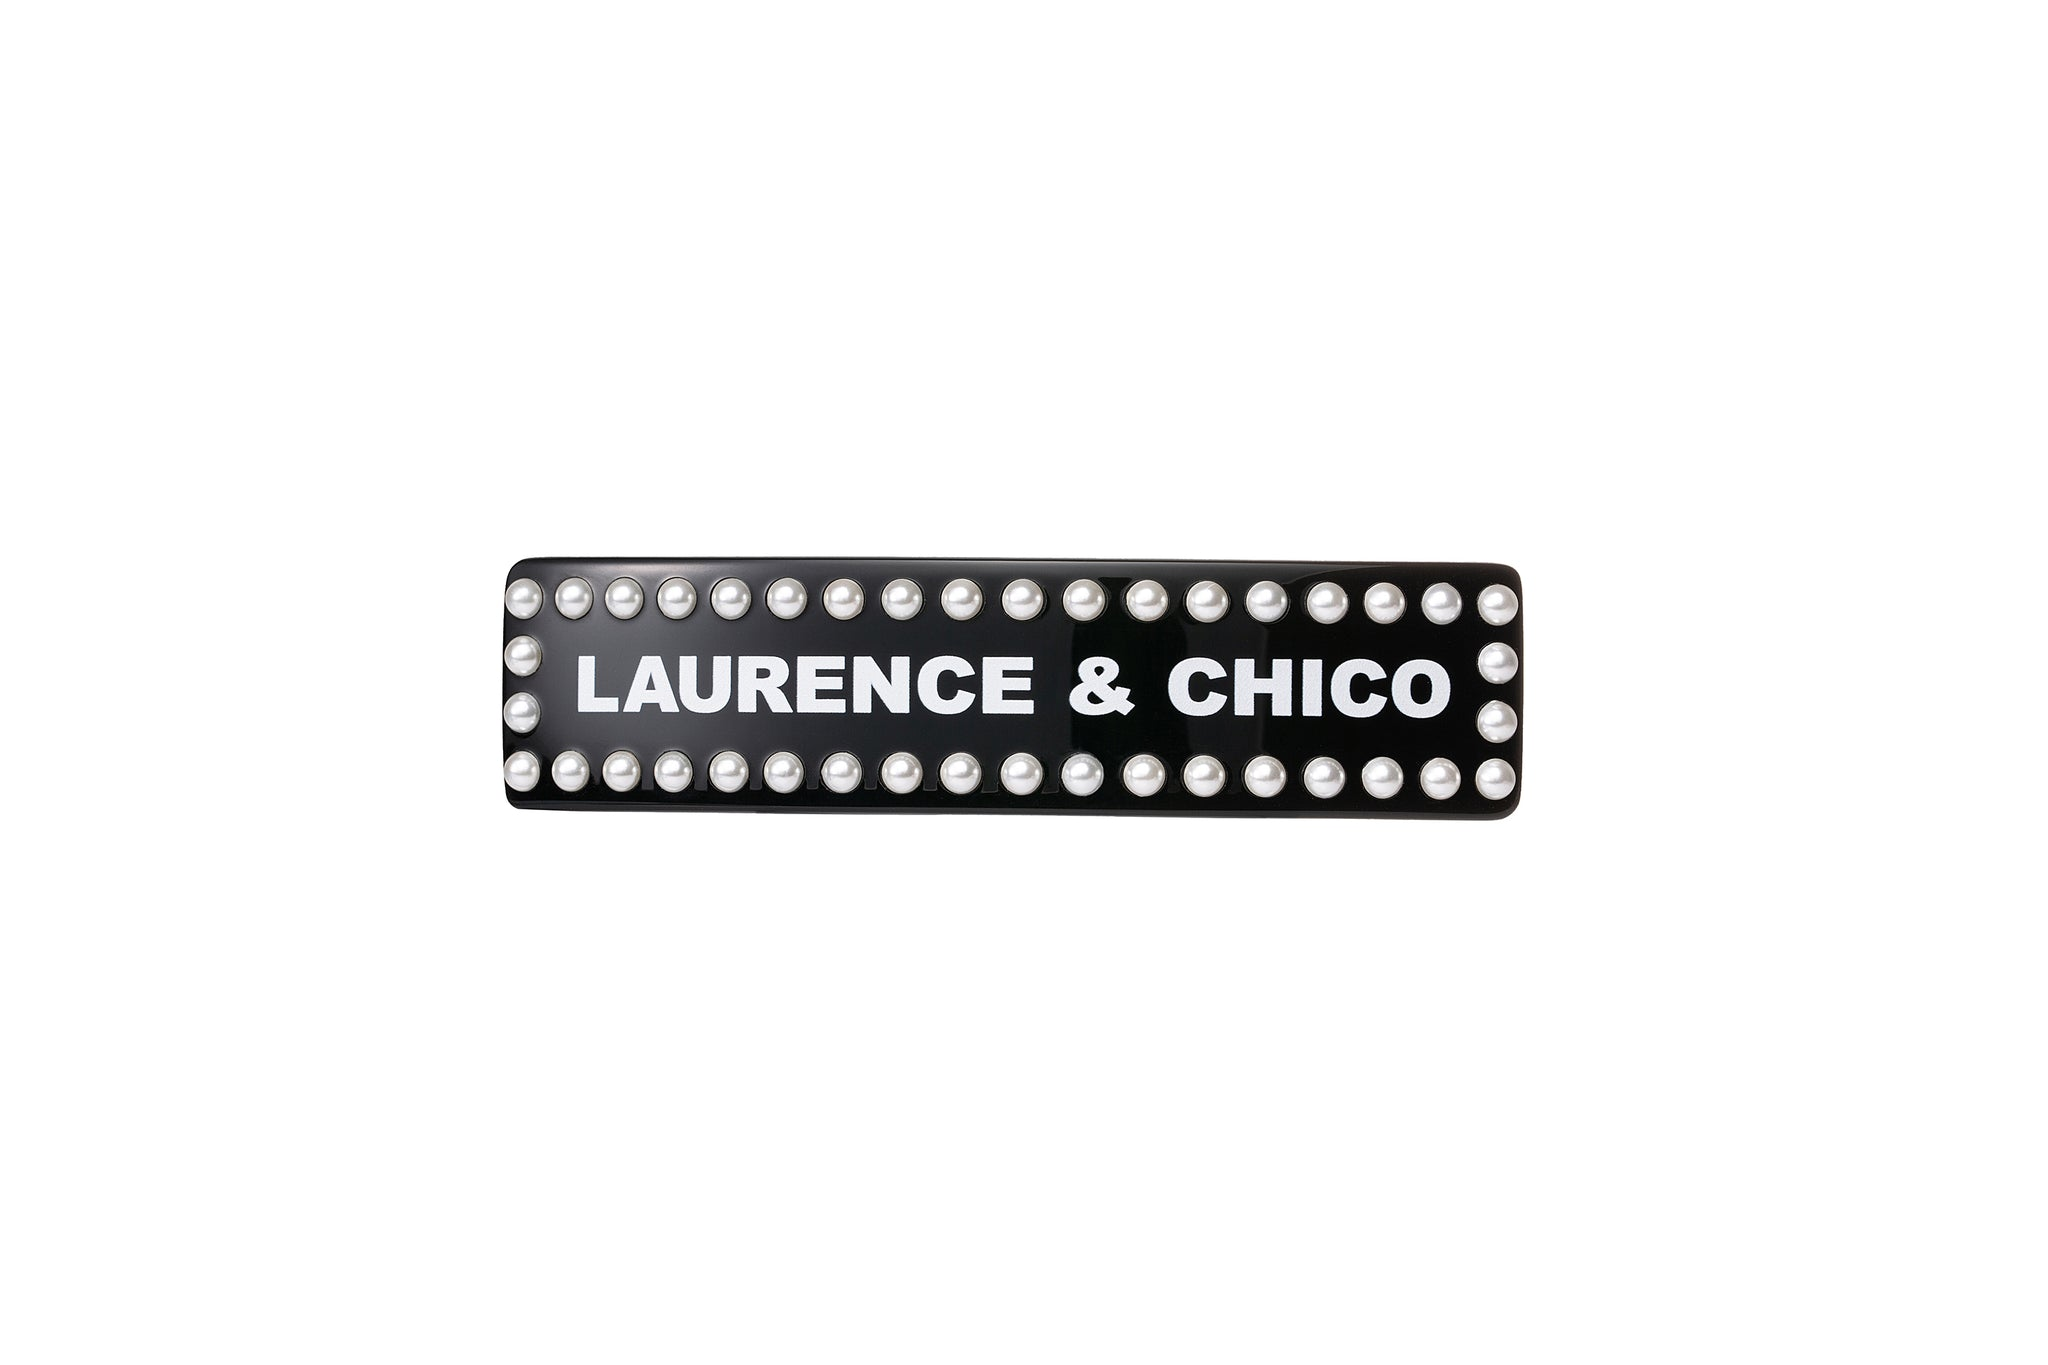 Laurence & Chico Logo Barrette